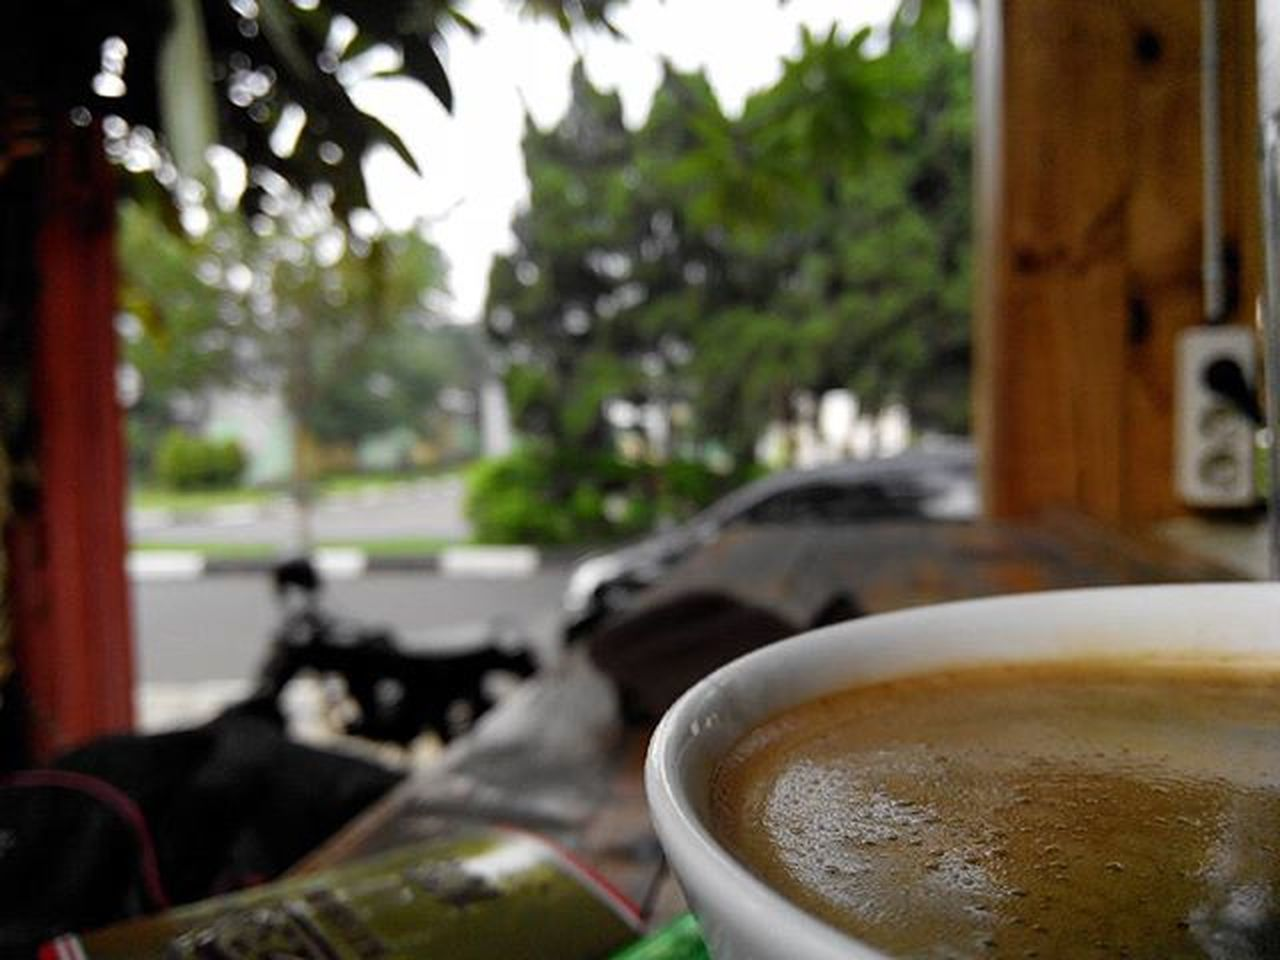 di Seduh dulu... biar Teduh ... biar Tenang ... Kopihitam aja... biar Klasik ... 😊 Kamitetapbuka Kalogatutup Udahgituaja 😁 Yasminrayasektor3nomer6 Bogor Afternooncoffee Lenovotography Pocketphotography Photooftheday Photostory Lzybstrd Journey